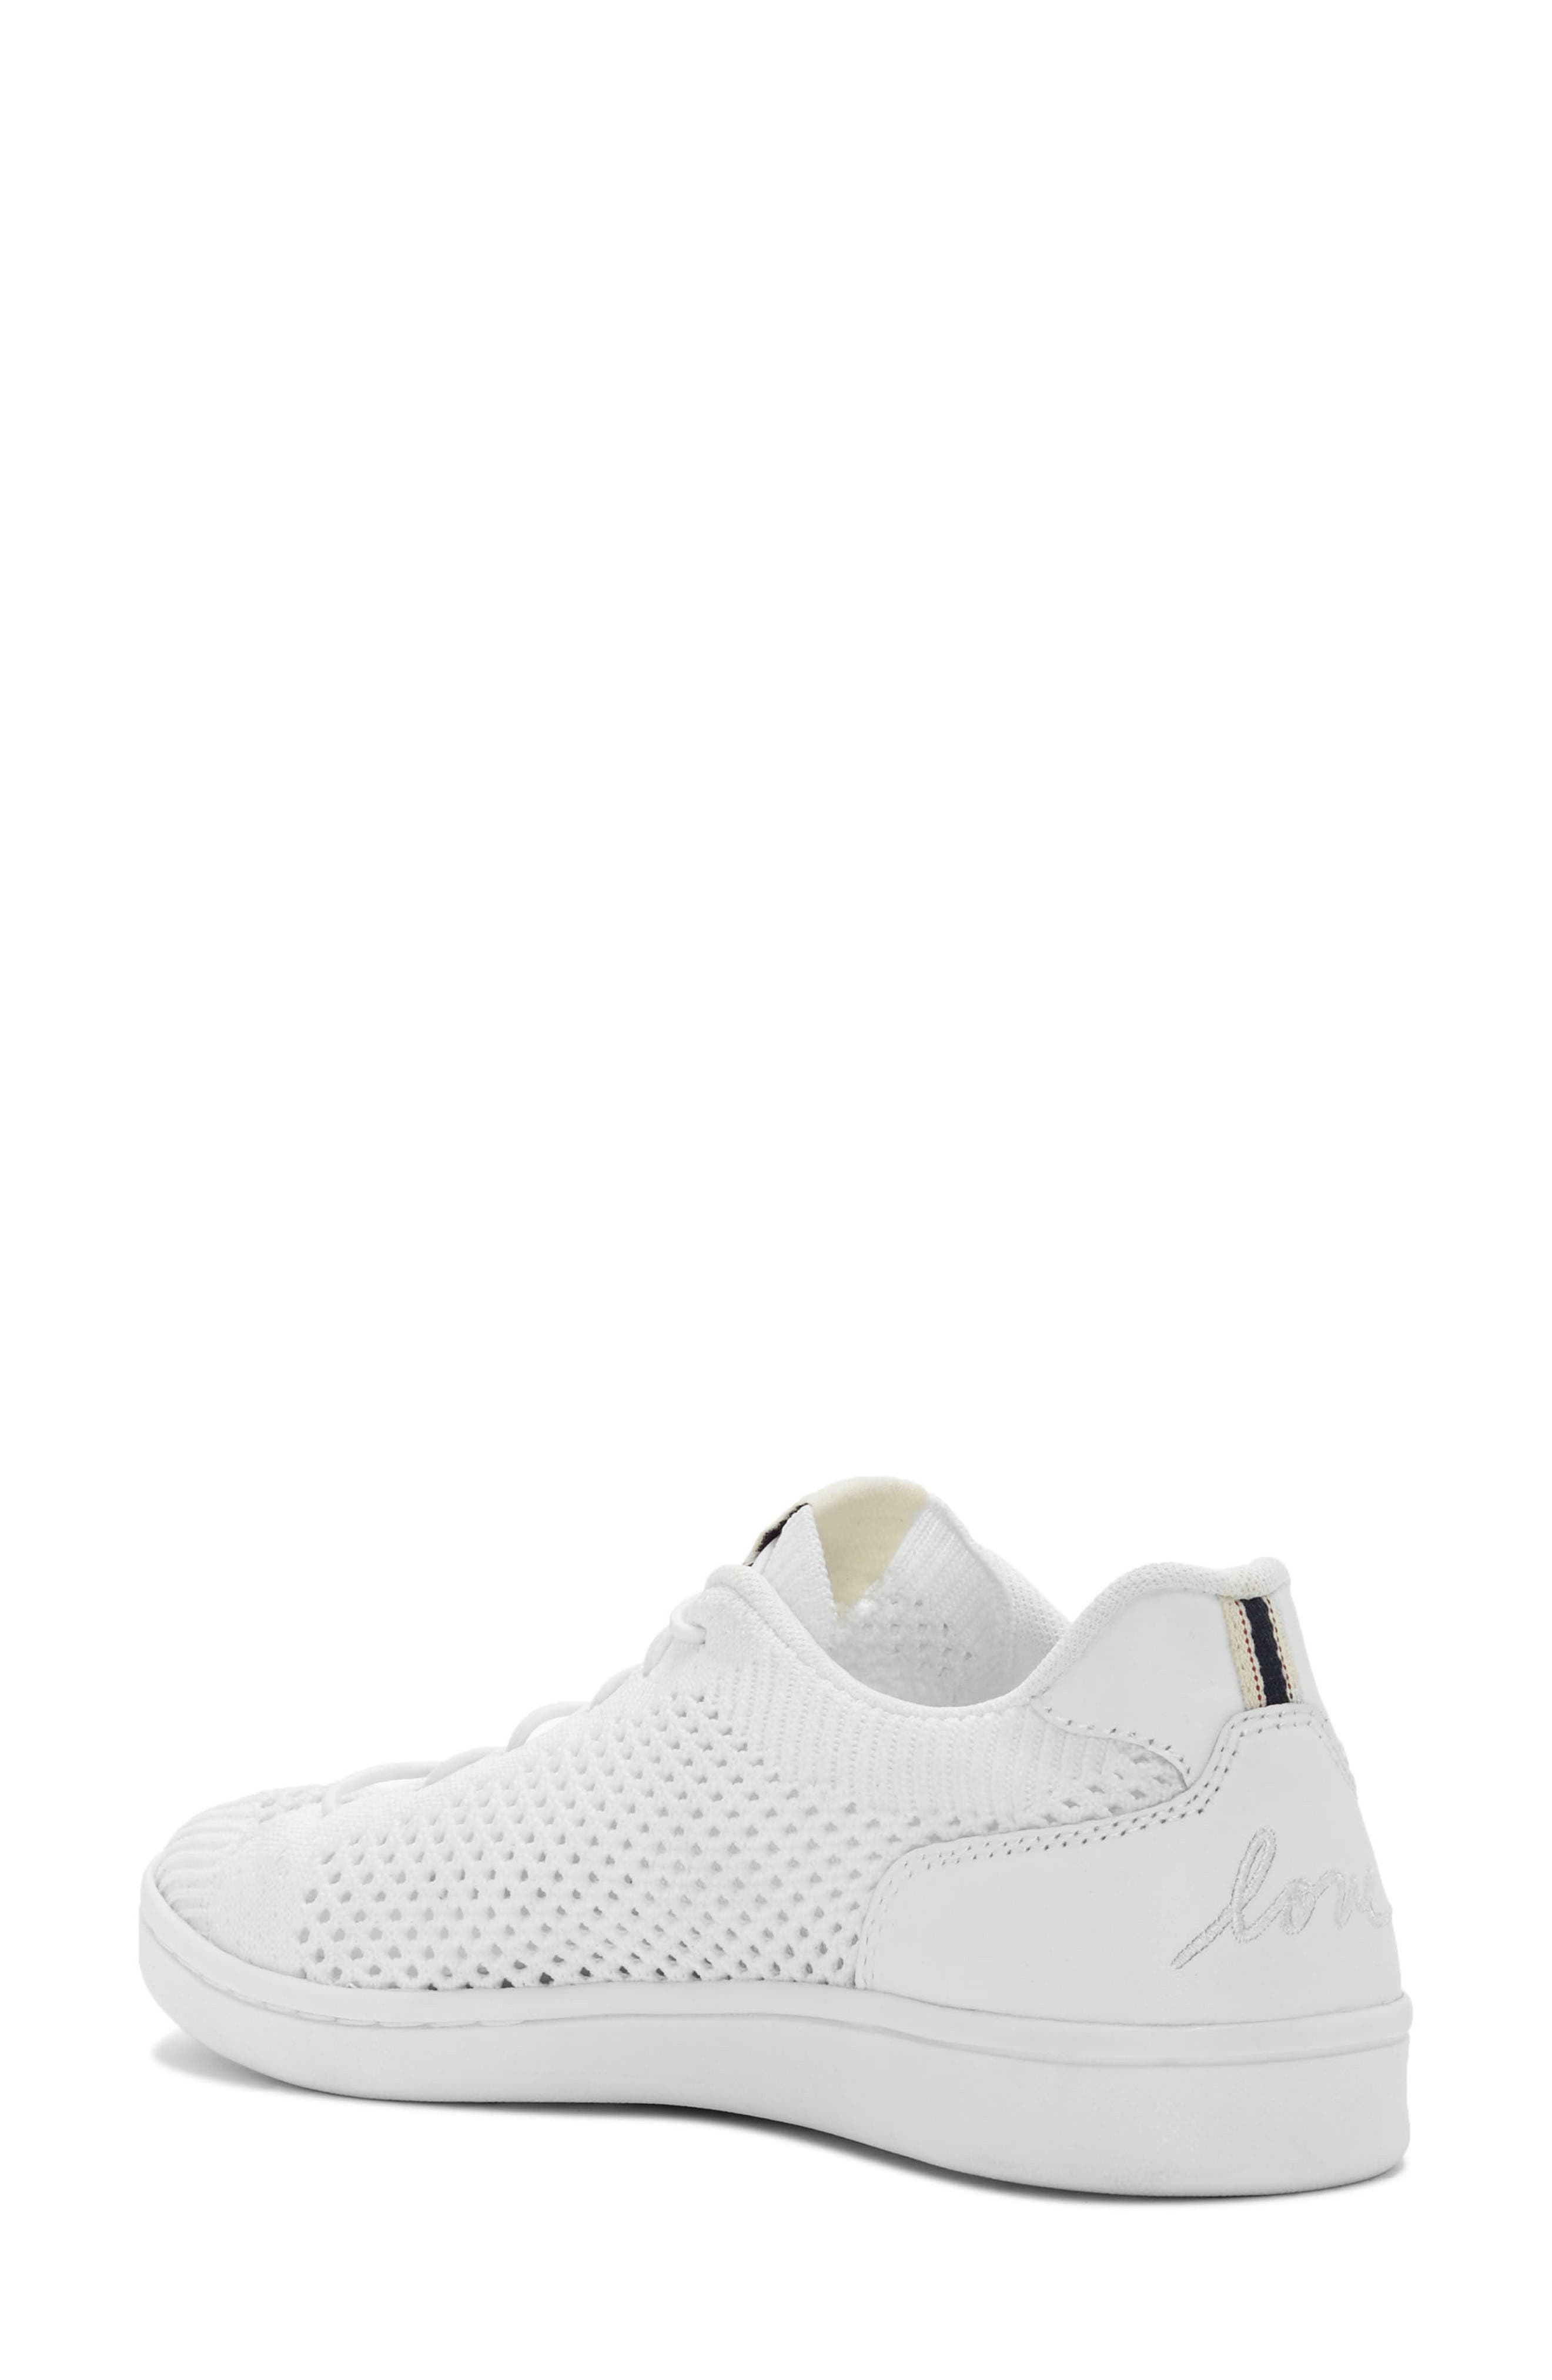 Alternate Image 2  - ED Ellen DeGeneres Casie Knit Sneaker (Women)